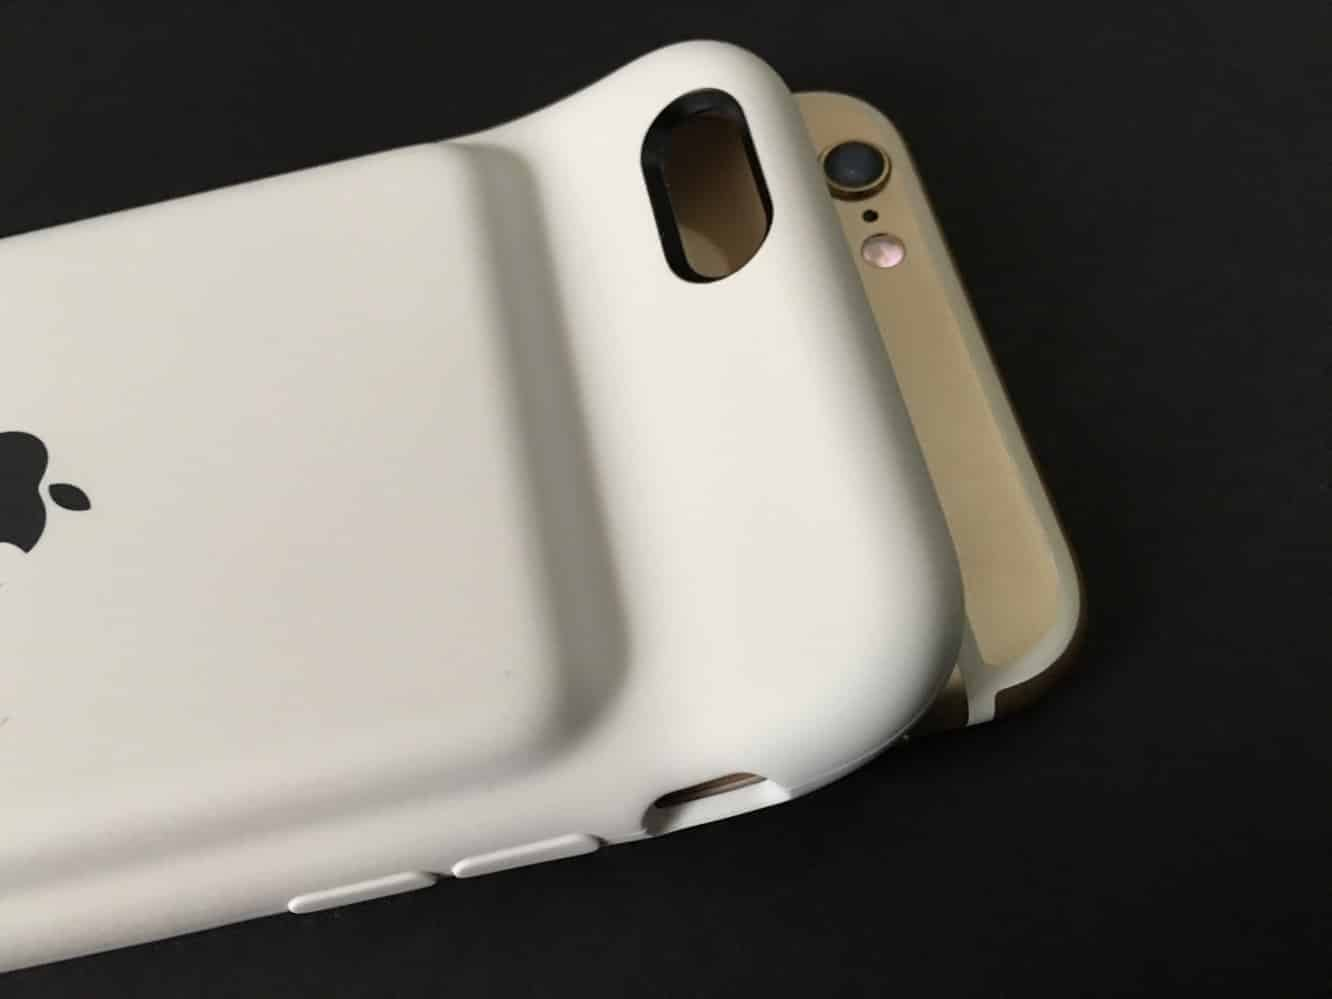 Cook responds to criticisms of new Apple iPhone Smart Battery Case